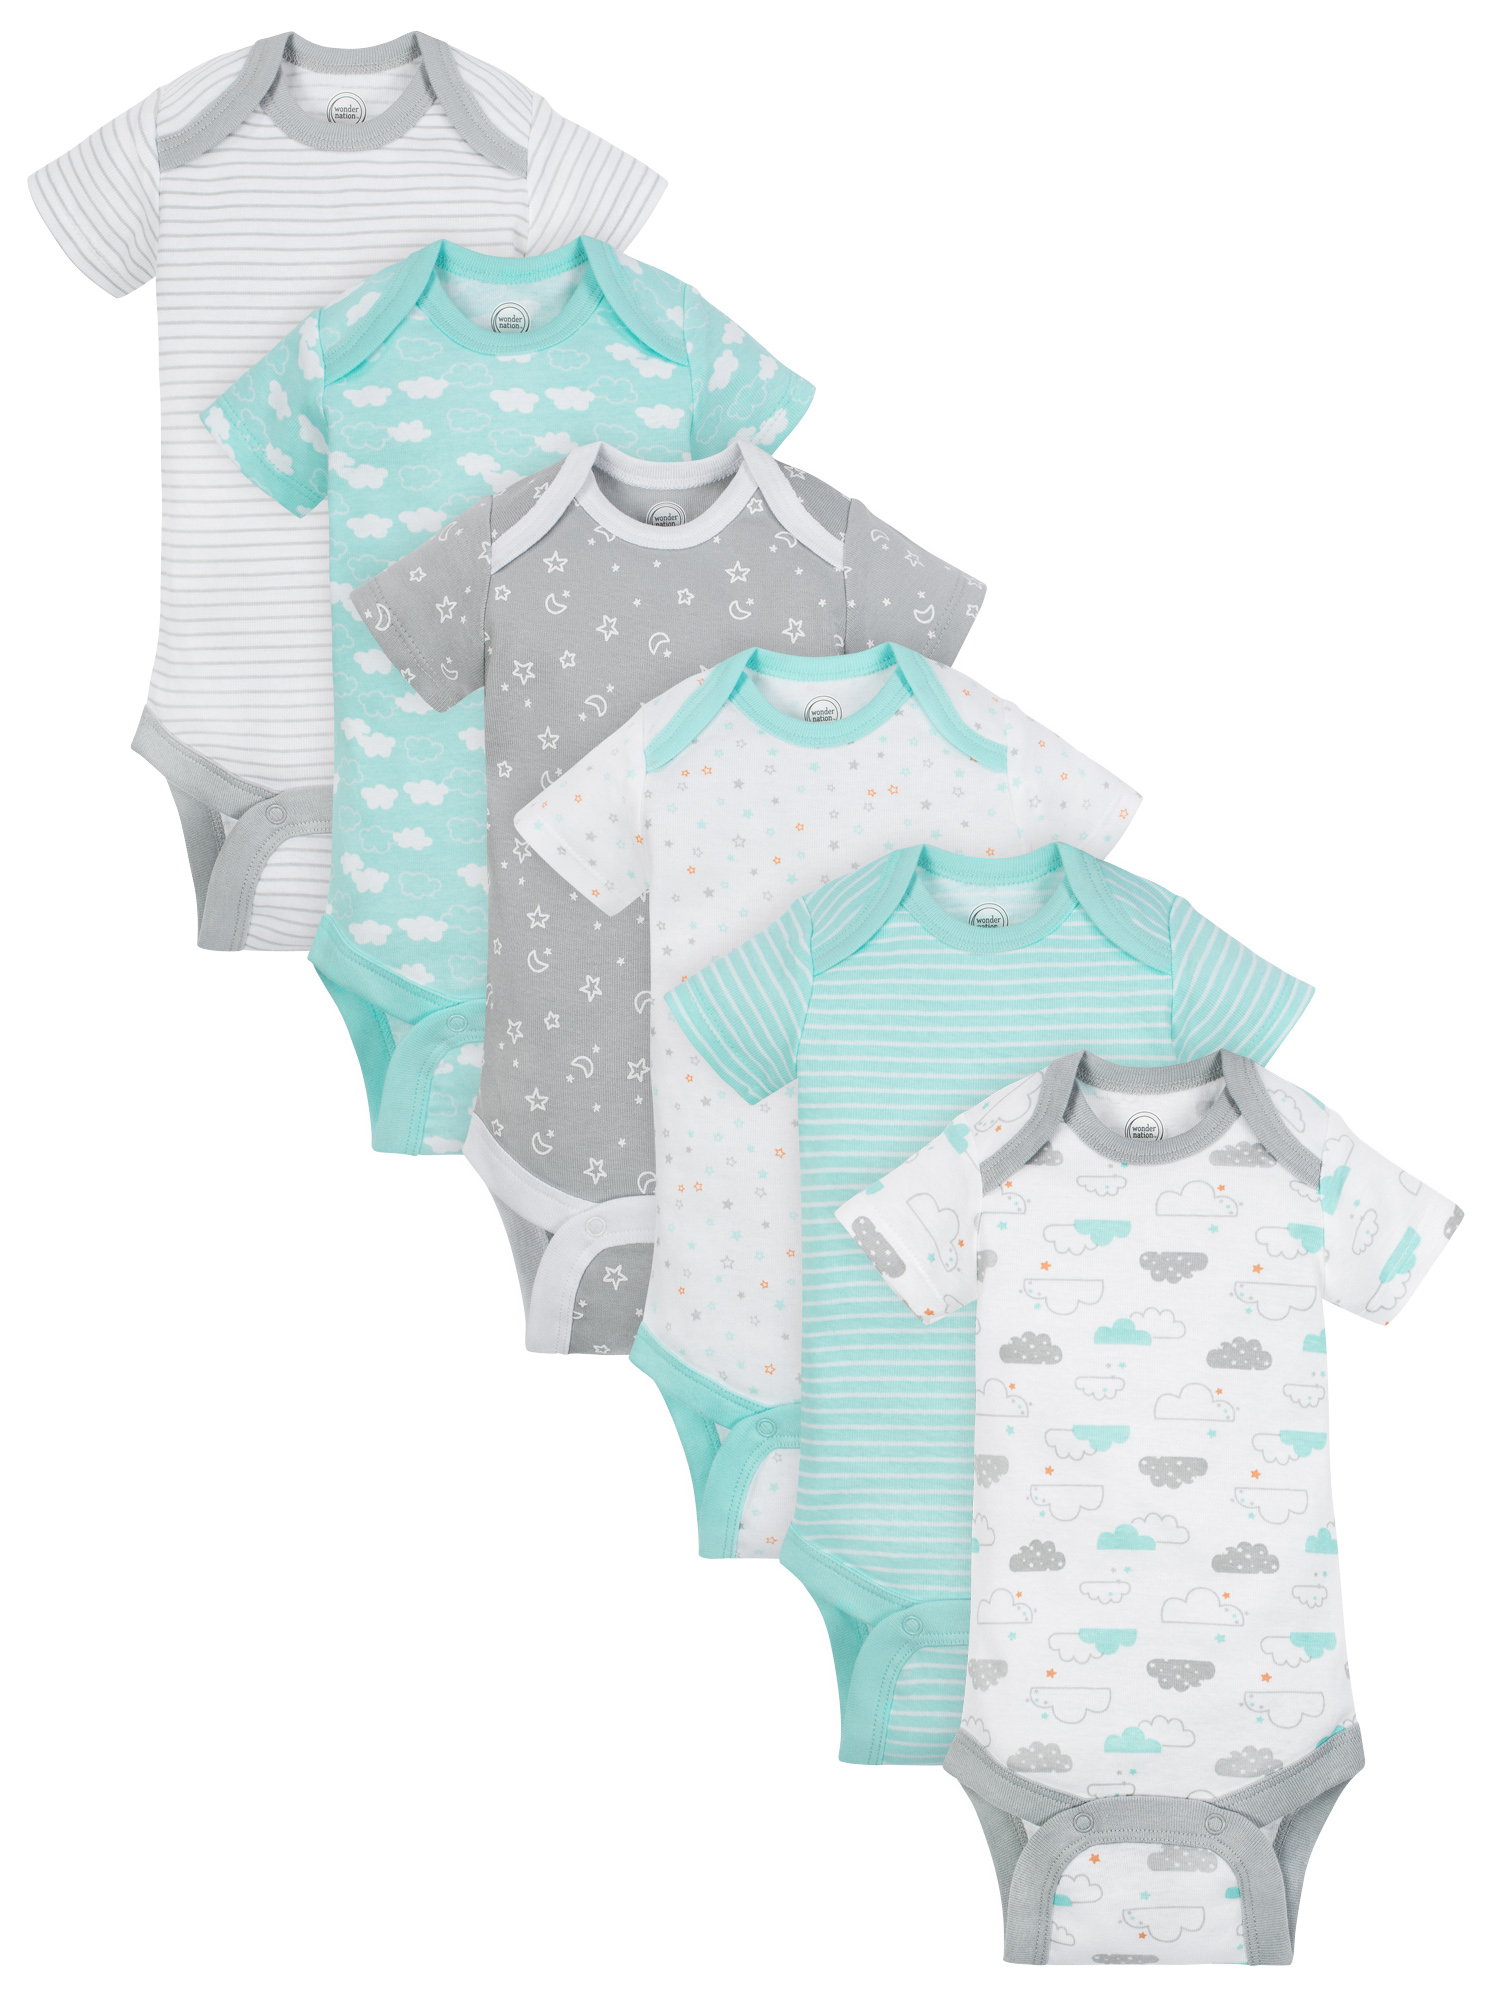 Short Sleeve Assorted Bodysuits, 6pk (Baby Boys or Baby Girls Unisex)